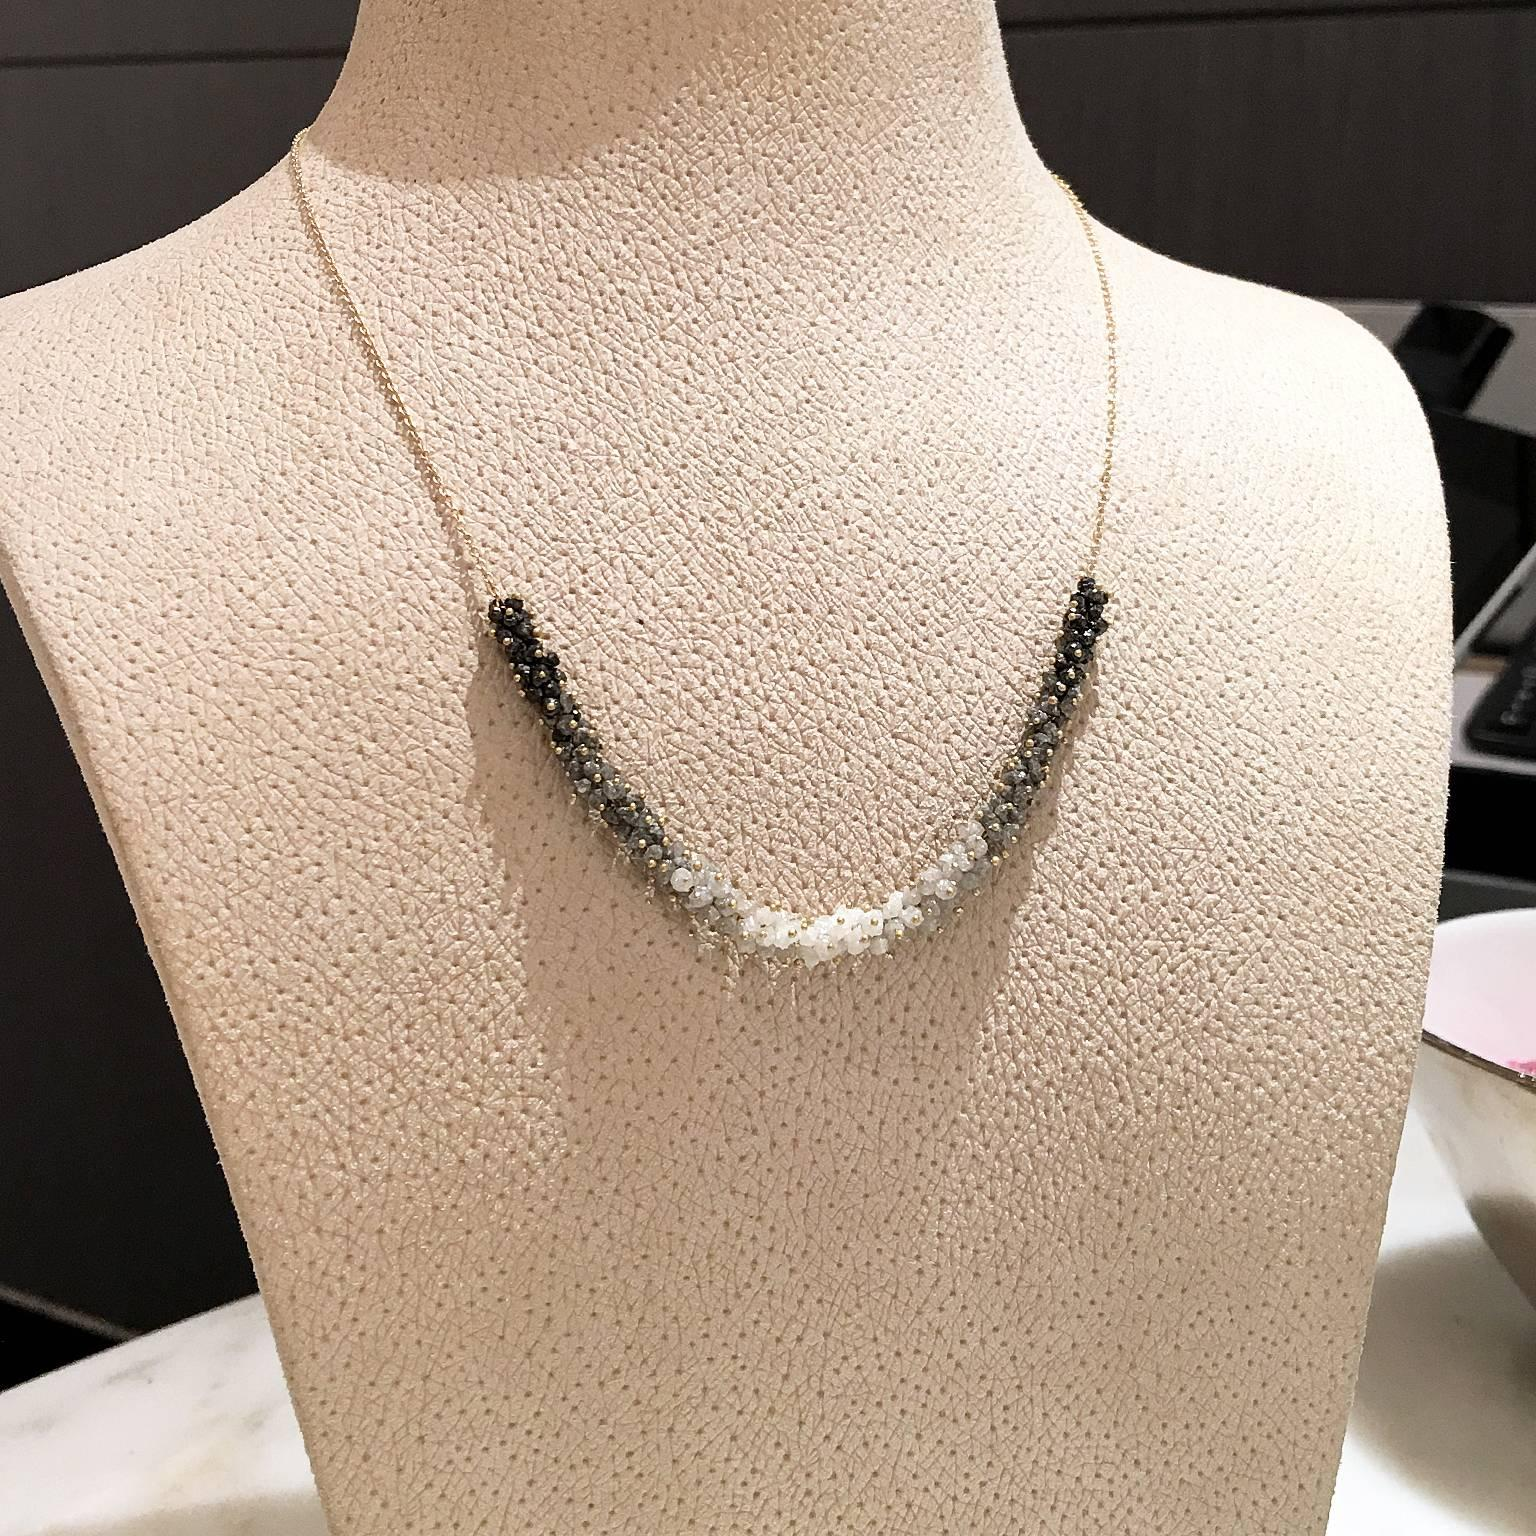 130f0f38e Rebecca Overmann Intricate 15 Carat White Gray Black Diamond Gold Ombre  Necklace For Sale at 1stdibs